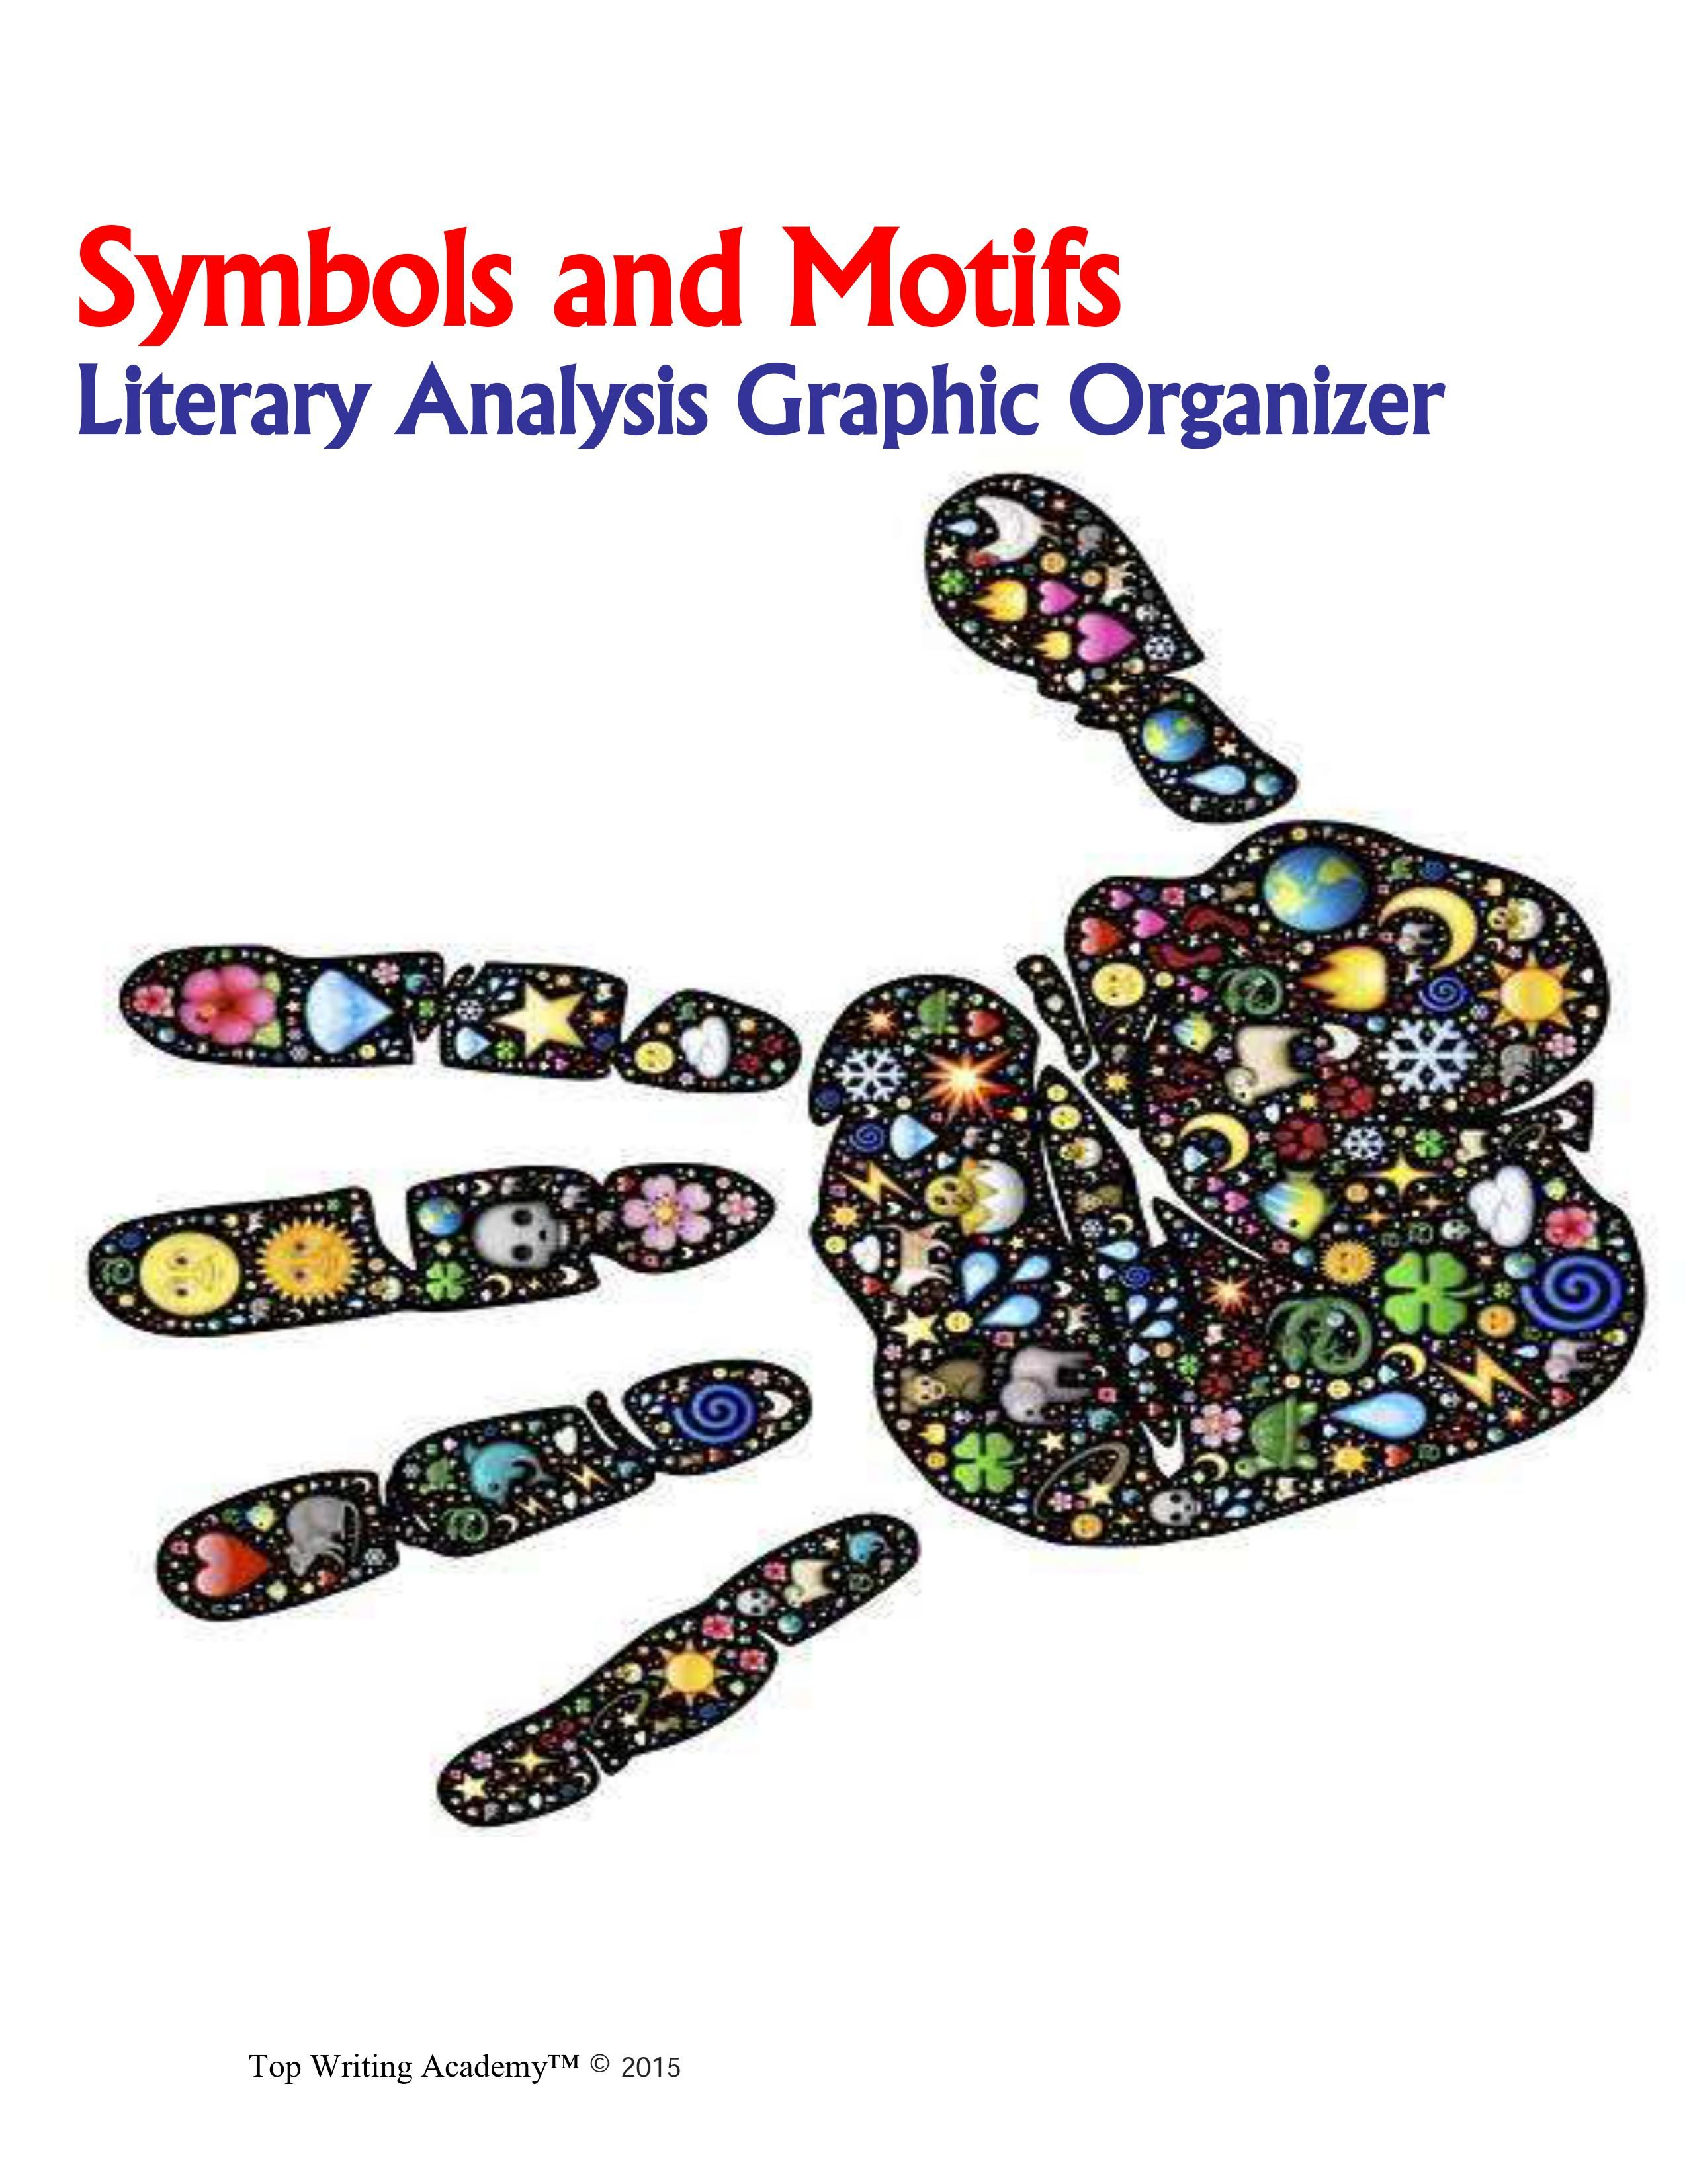 Literary elements symbolism symbols and motifs graphic this collection of resources is designed to help facilitate student understanding of the development of symbols biocorpaavc Images